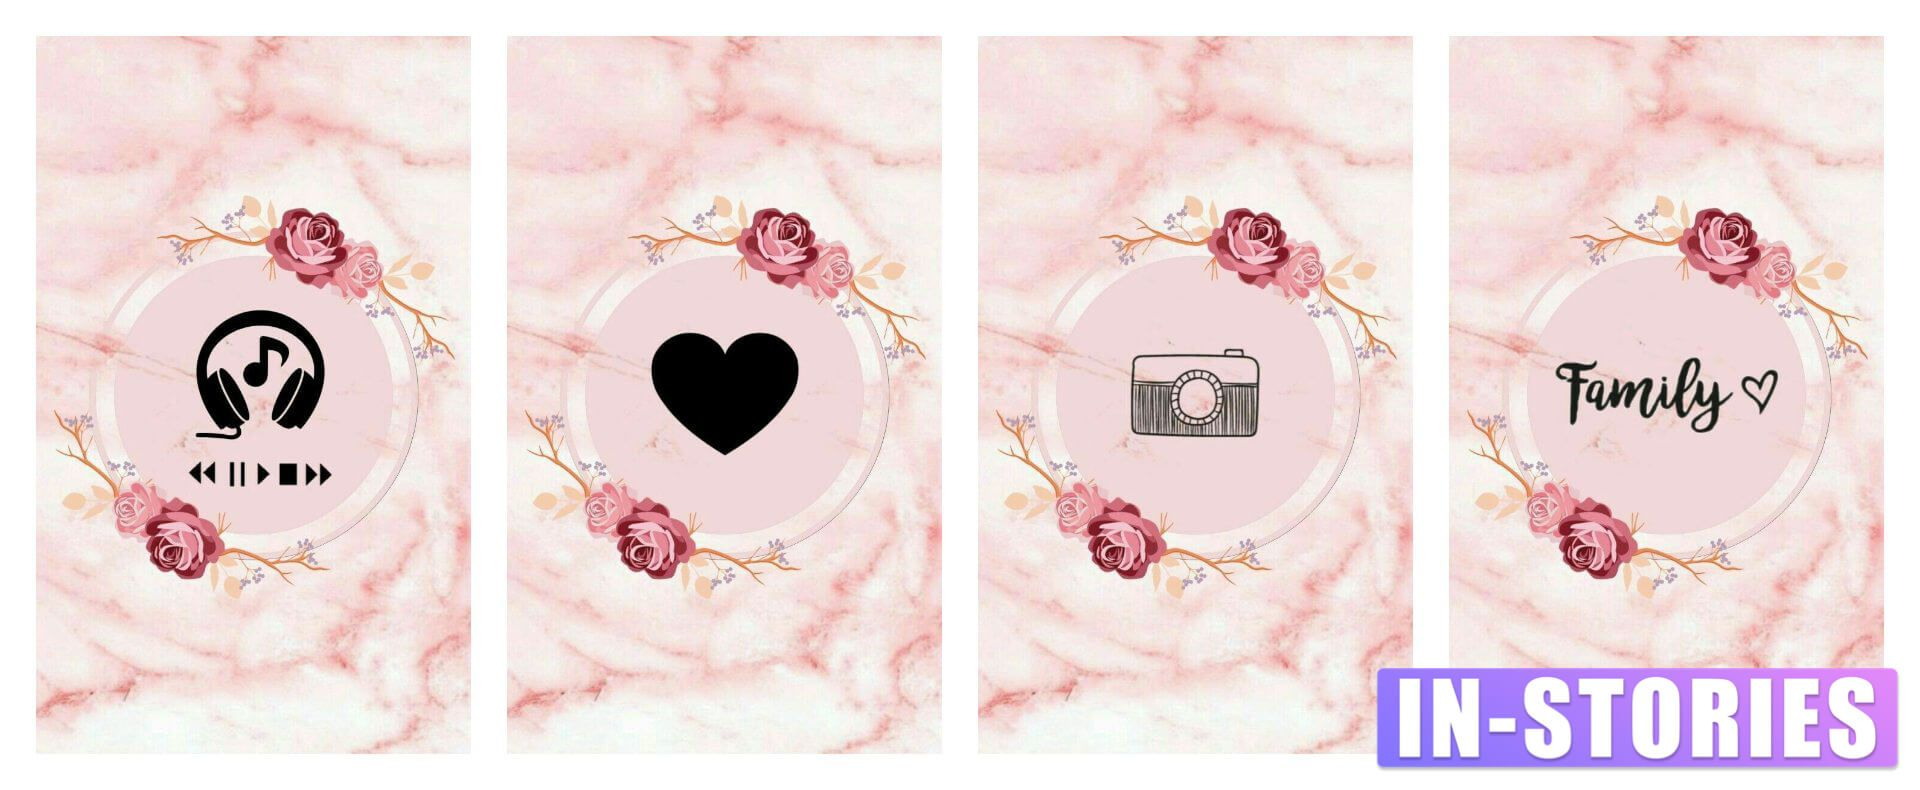 27 marble pink Free Highlights covers for stories